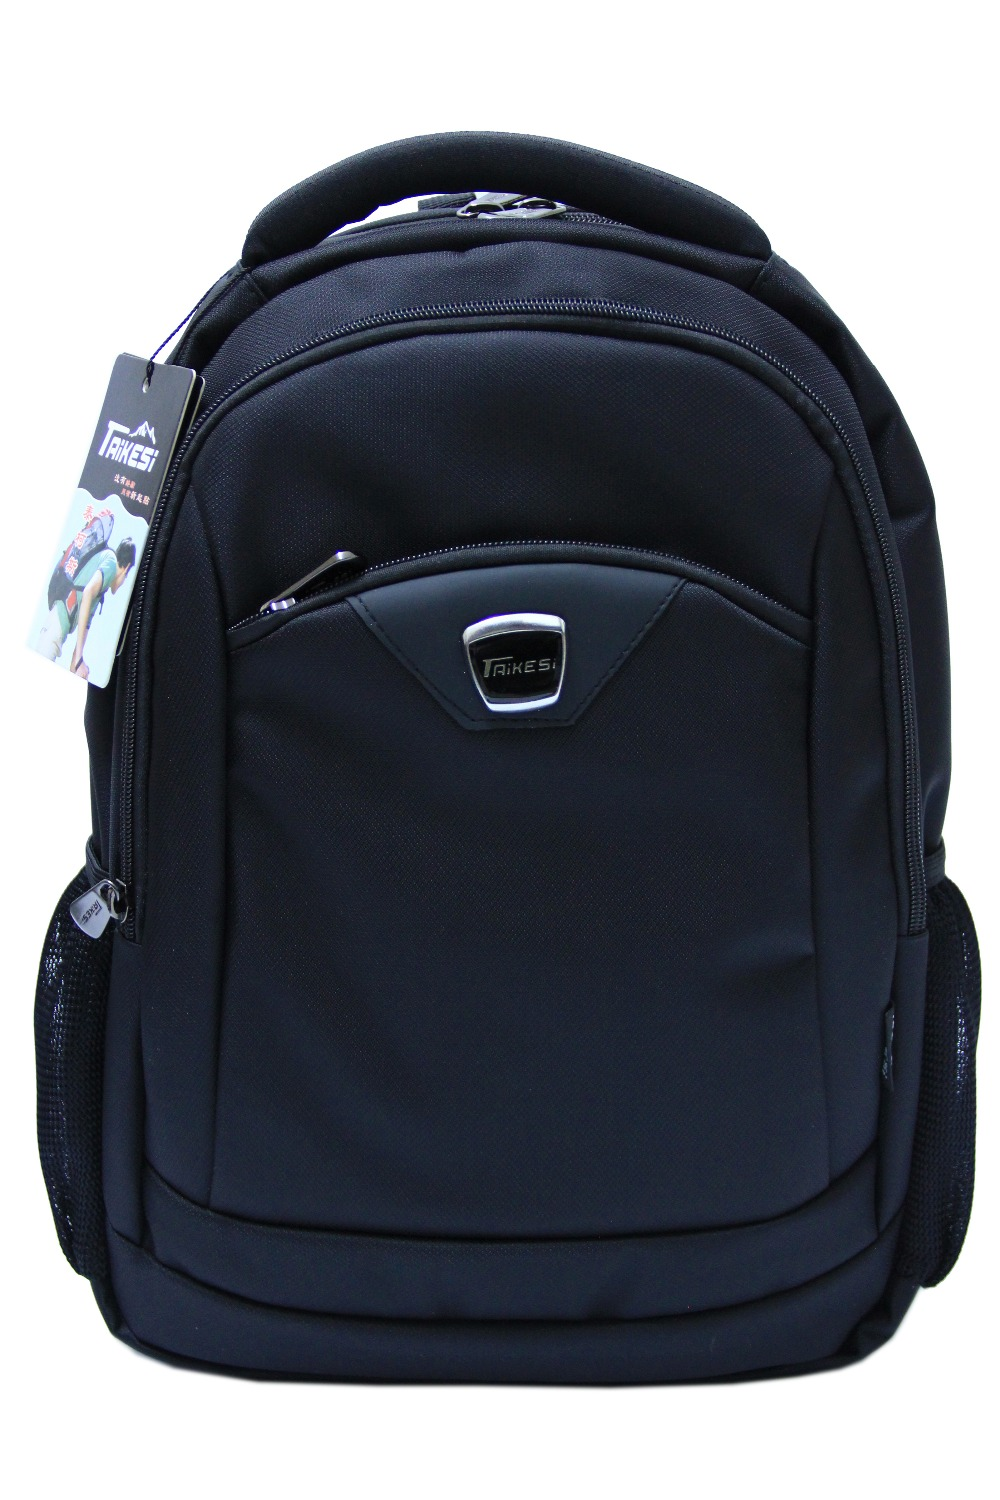 Hot Sell !! 2016 business men backpack high quality student bookbag designer backpack travel laptop small backpack free shipping(China (Mainland))